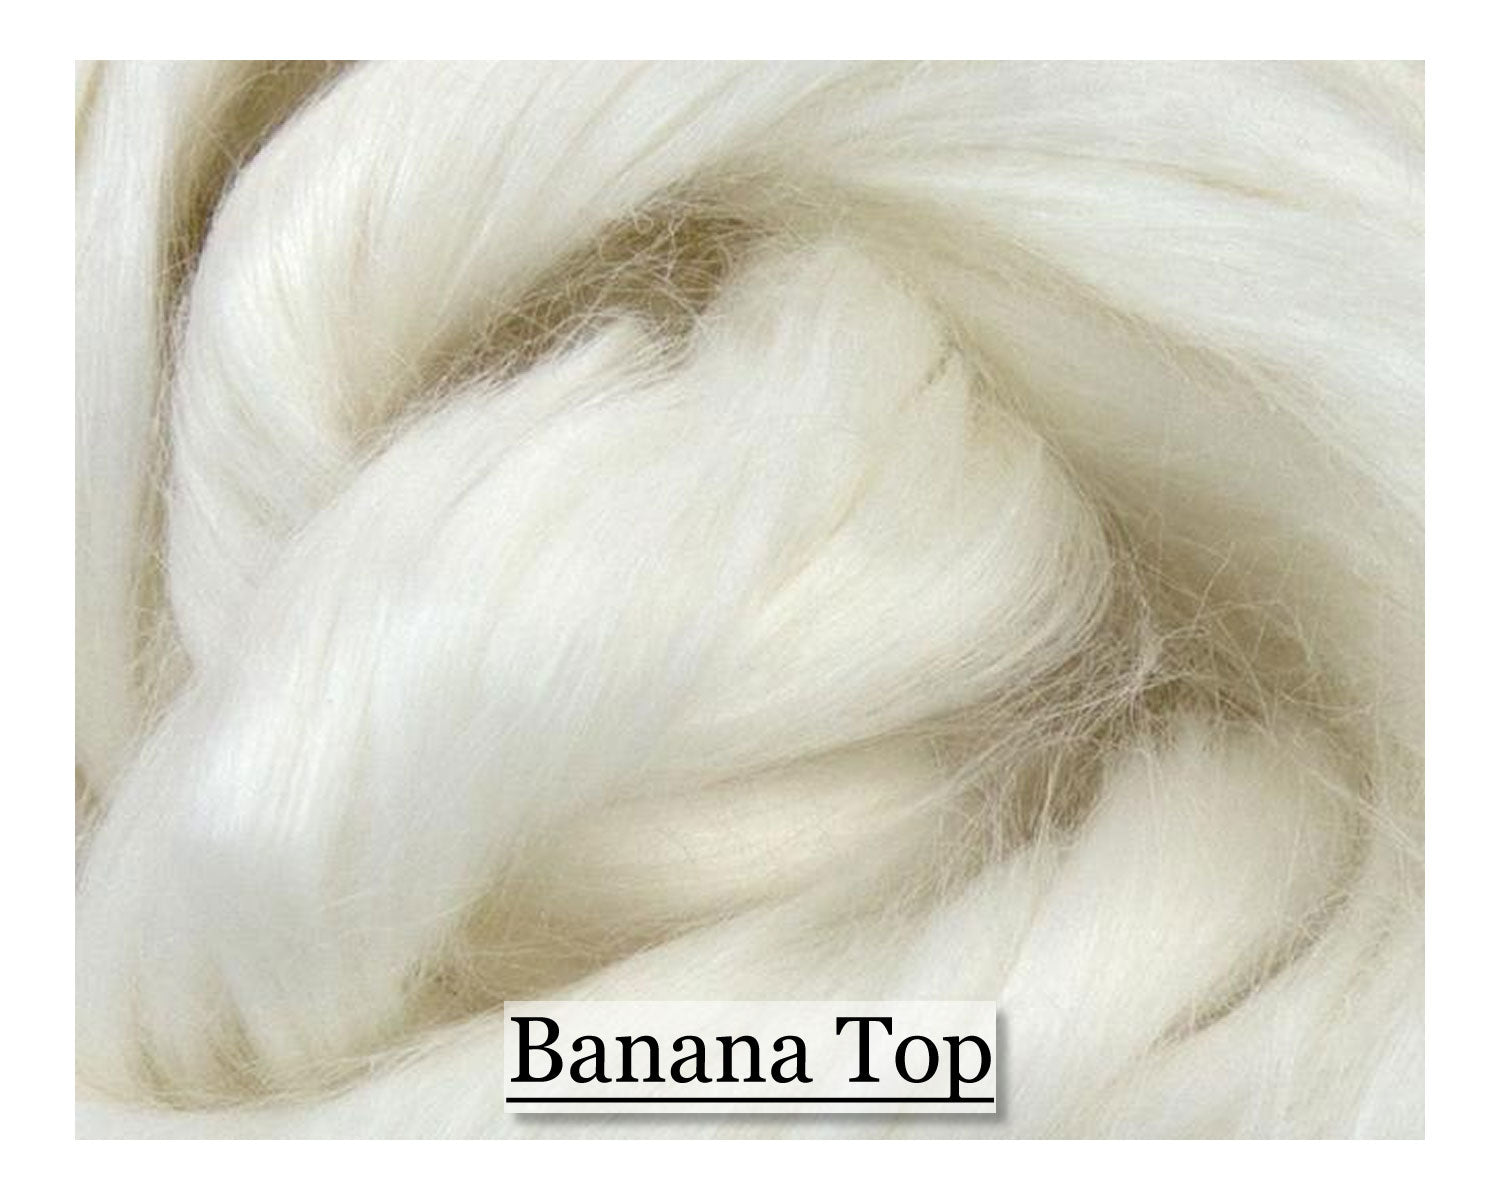 Banana Top - 1, 2 or 4 oz